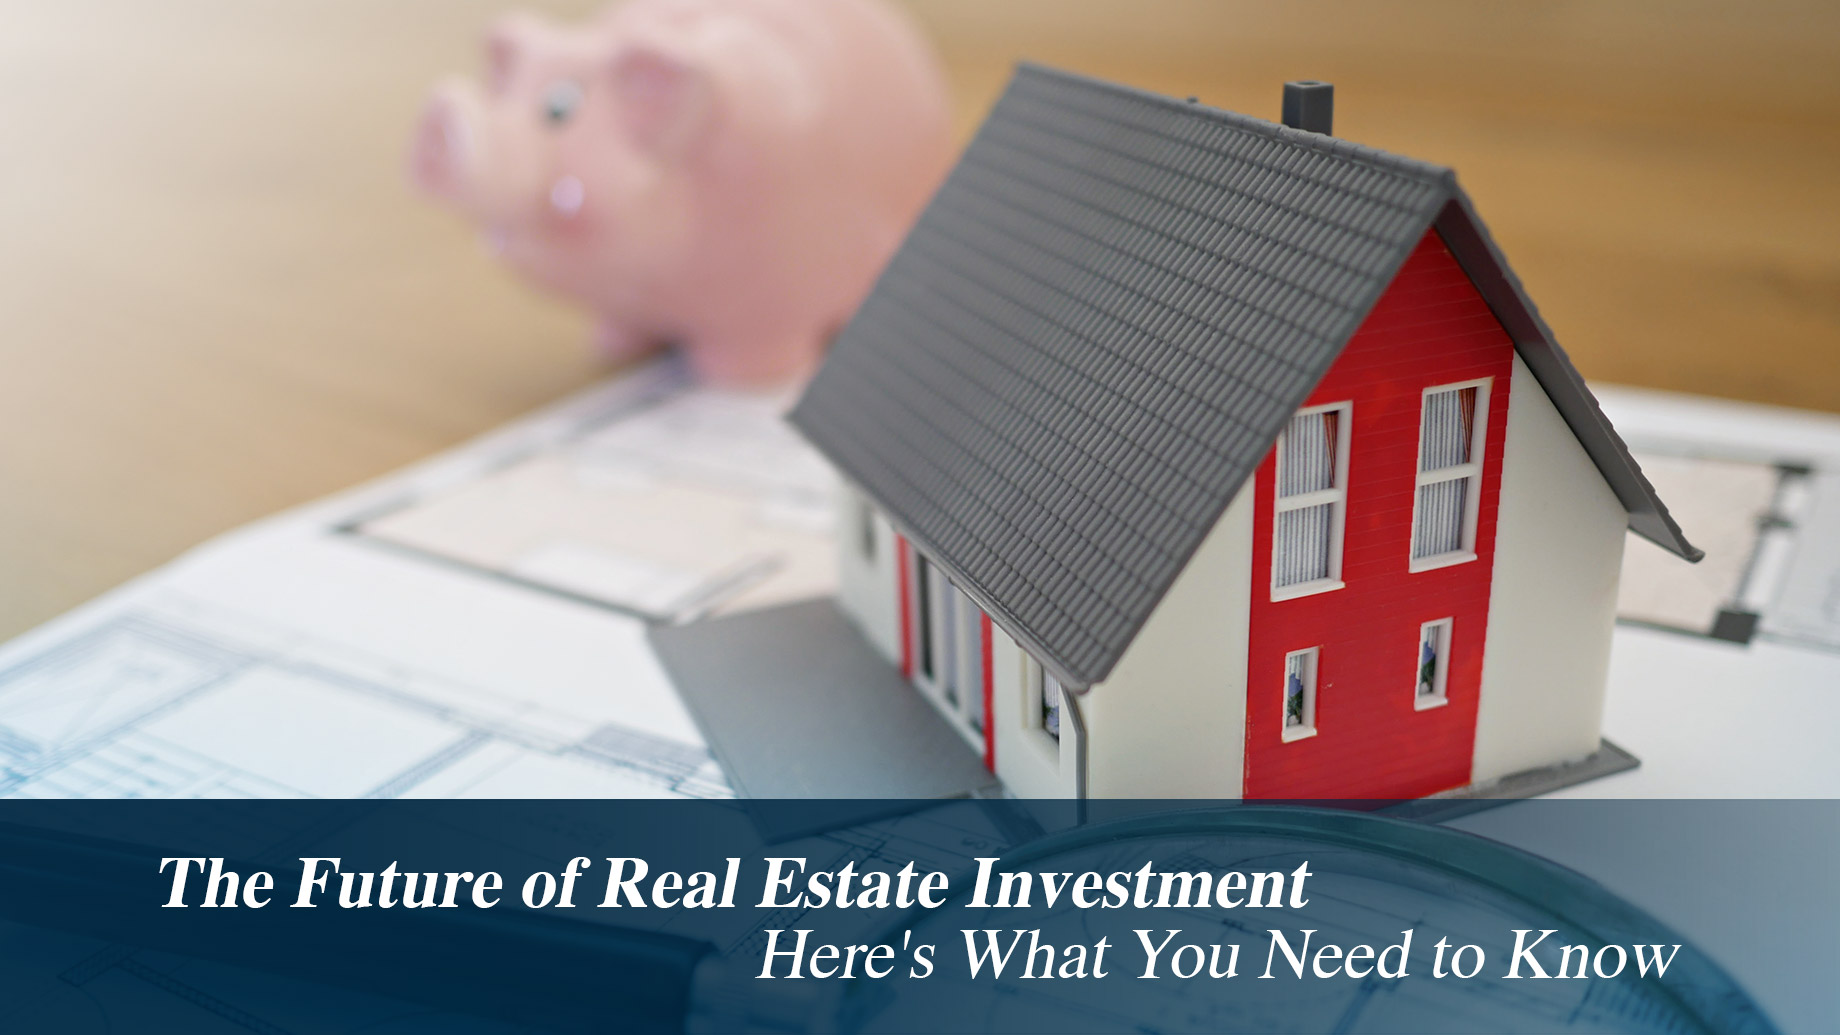 The Future of Real Estate Investment - Here's What You Need to Know